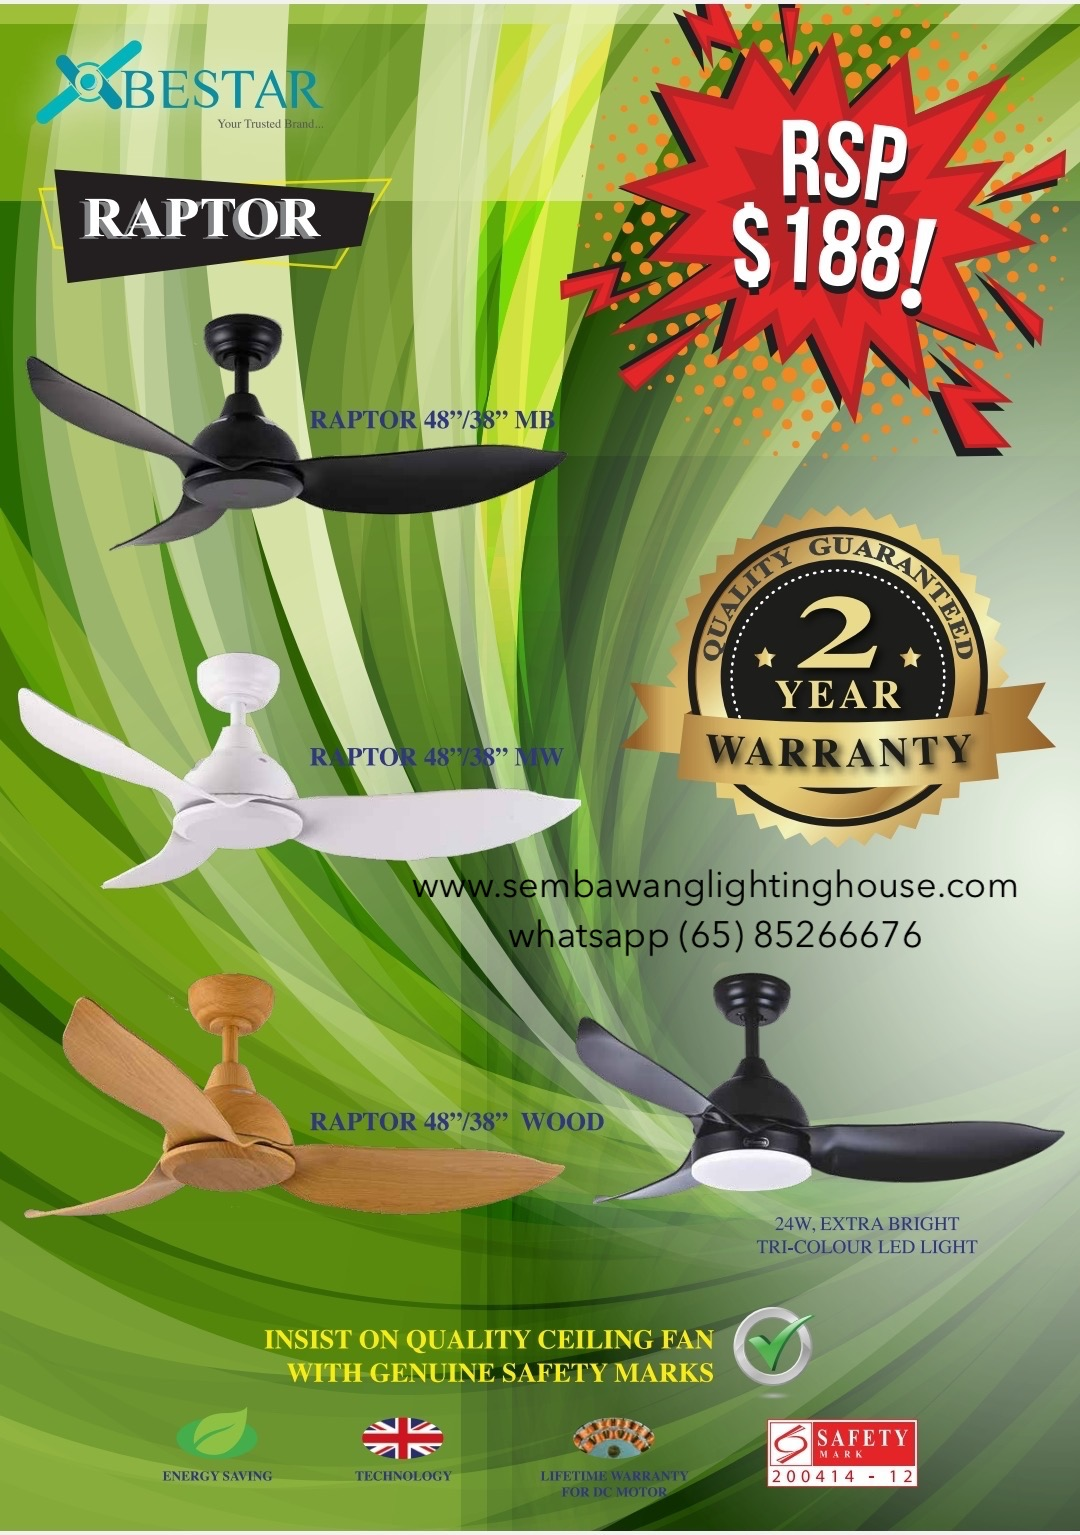 bestar-raptor-ceiling-fan-brochure-sembawang-lighting-house.jpg